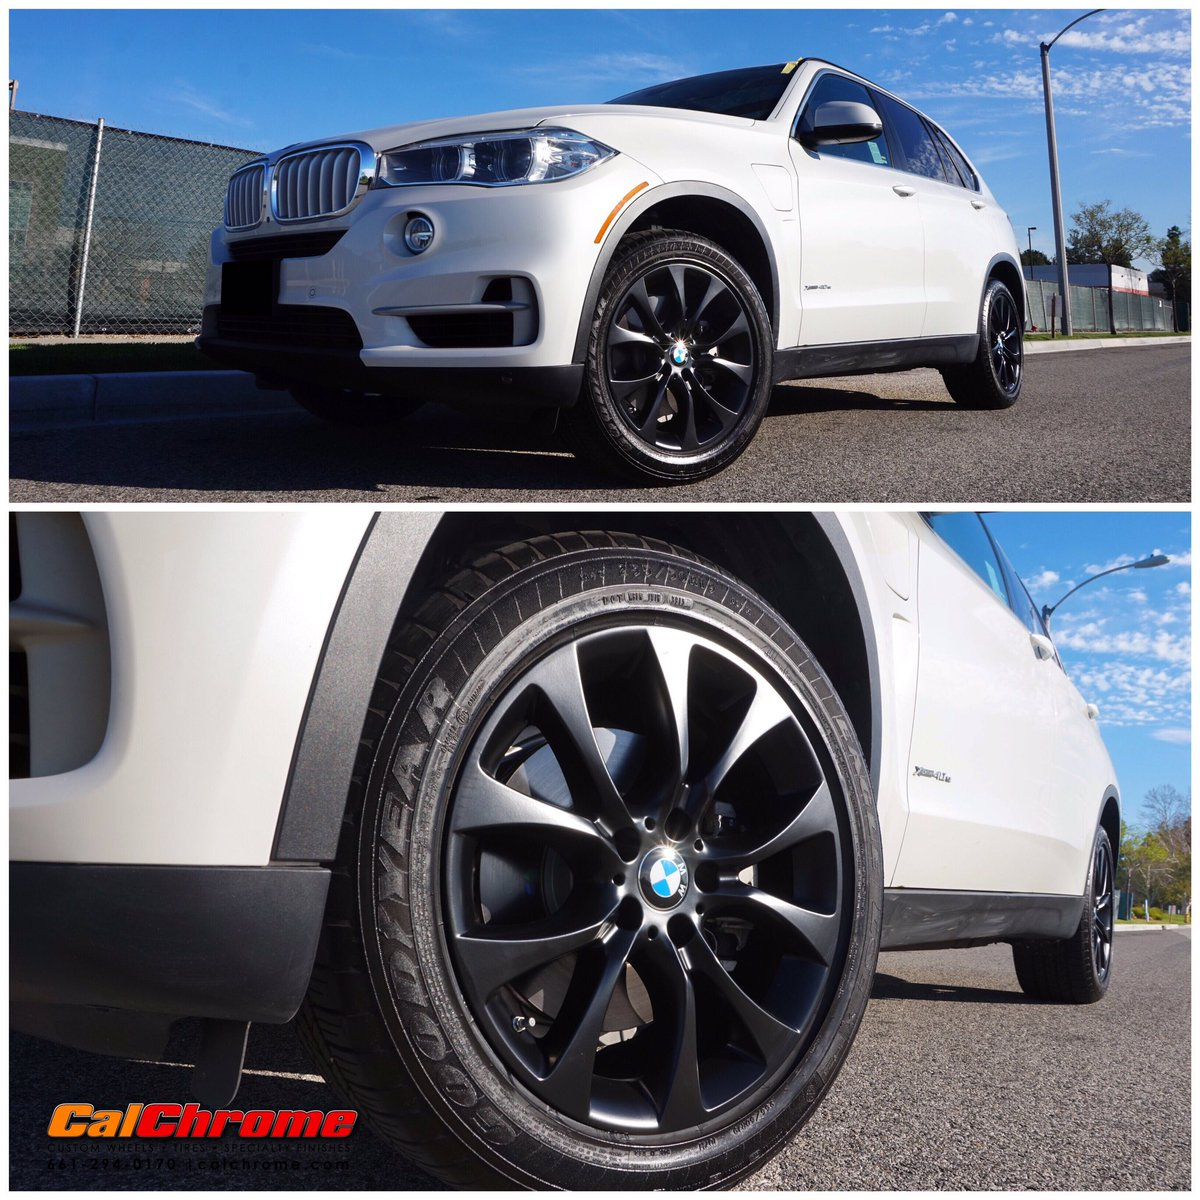 Cal Chrome On Twitter Bmw X5 With Style 450 Wheels Processed For Matte Black Fusion Powder Coat Calchrome Fusionpowdercoat Matteblackwheels Bmwx5 Bmwx5wheels Https T Co Mszhkzpbih